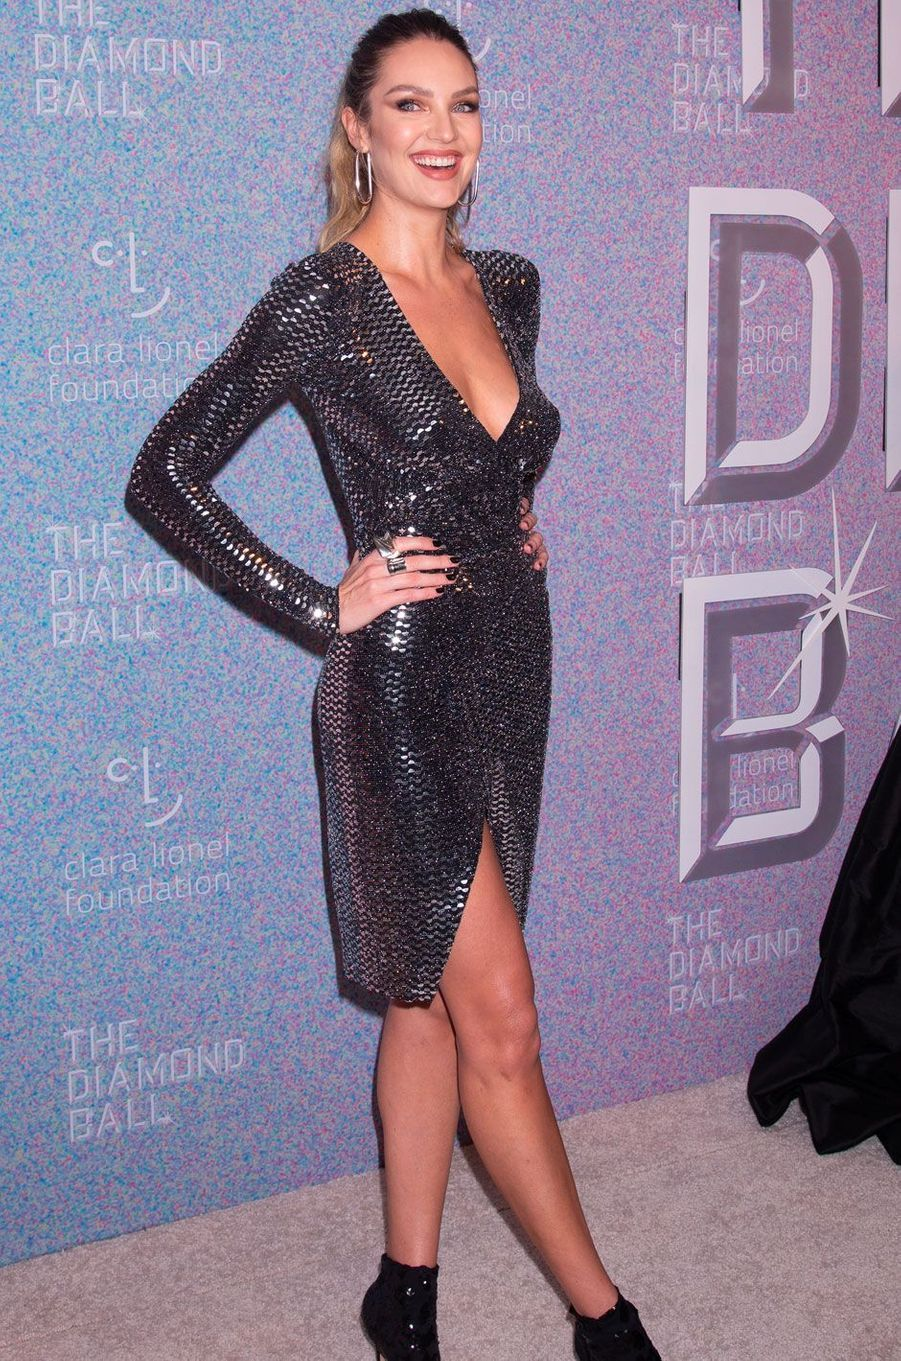 Candice Swanepoel au Diamond Ball, à New York le 13 septembre 2018